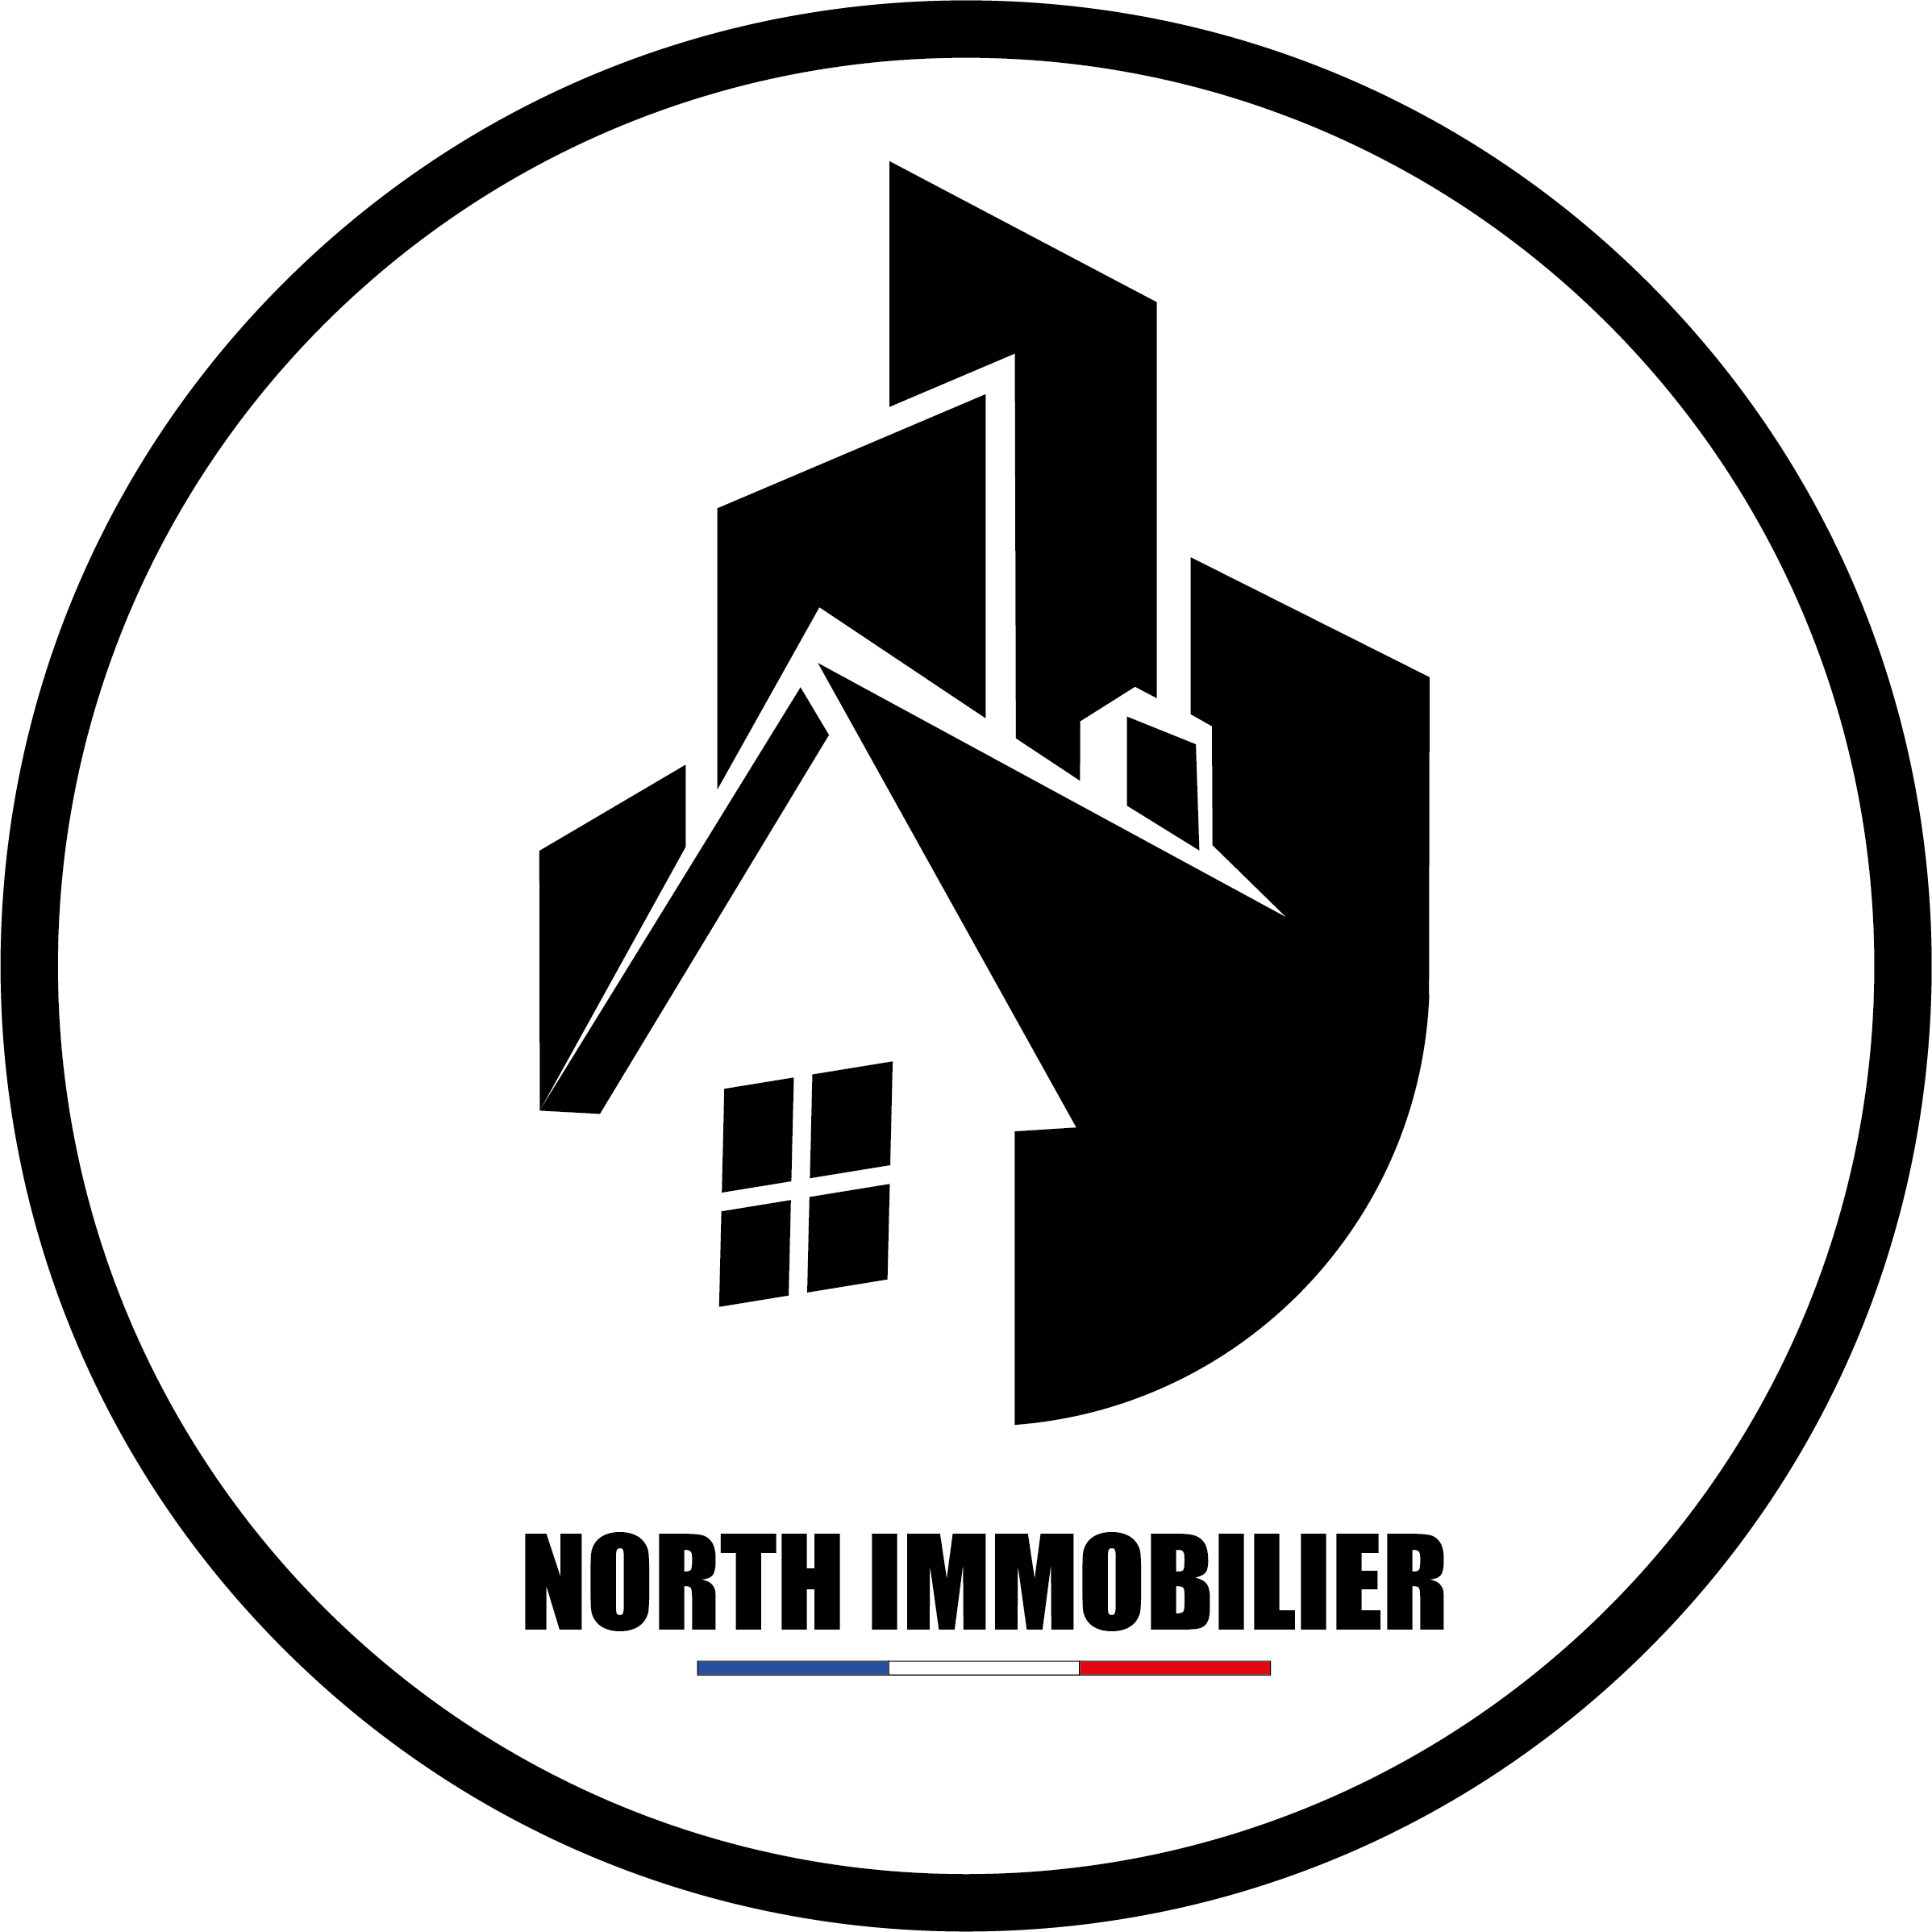 North Immobilier